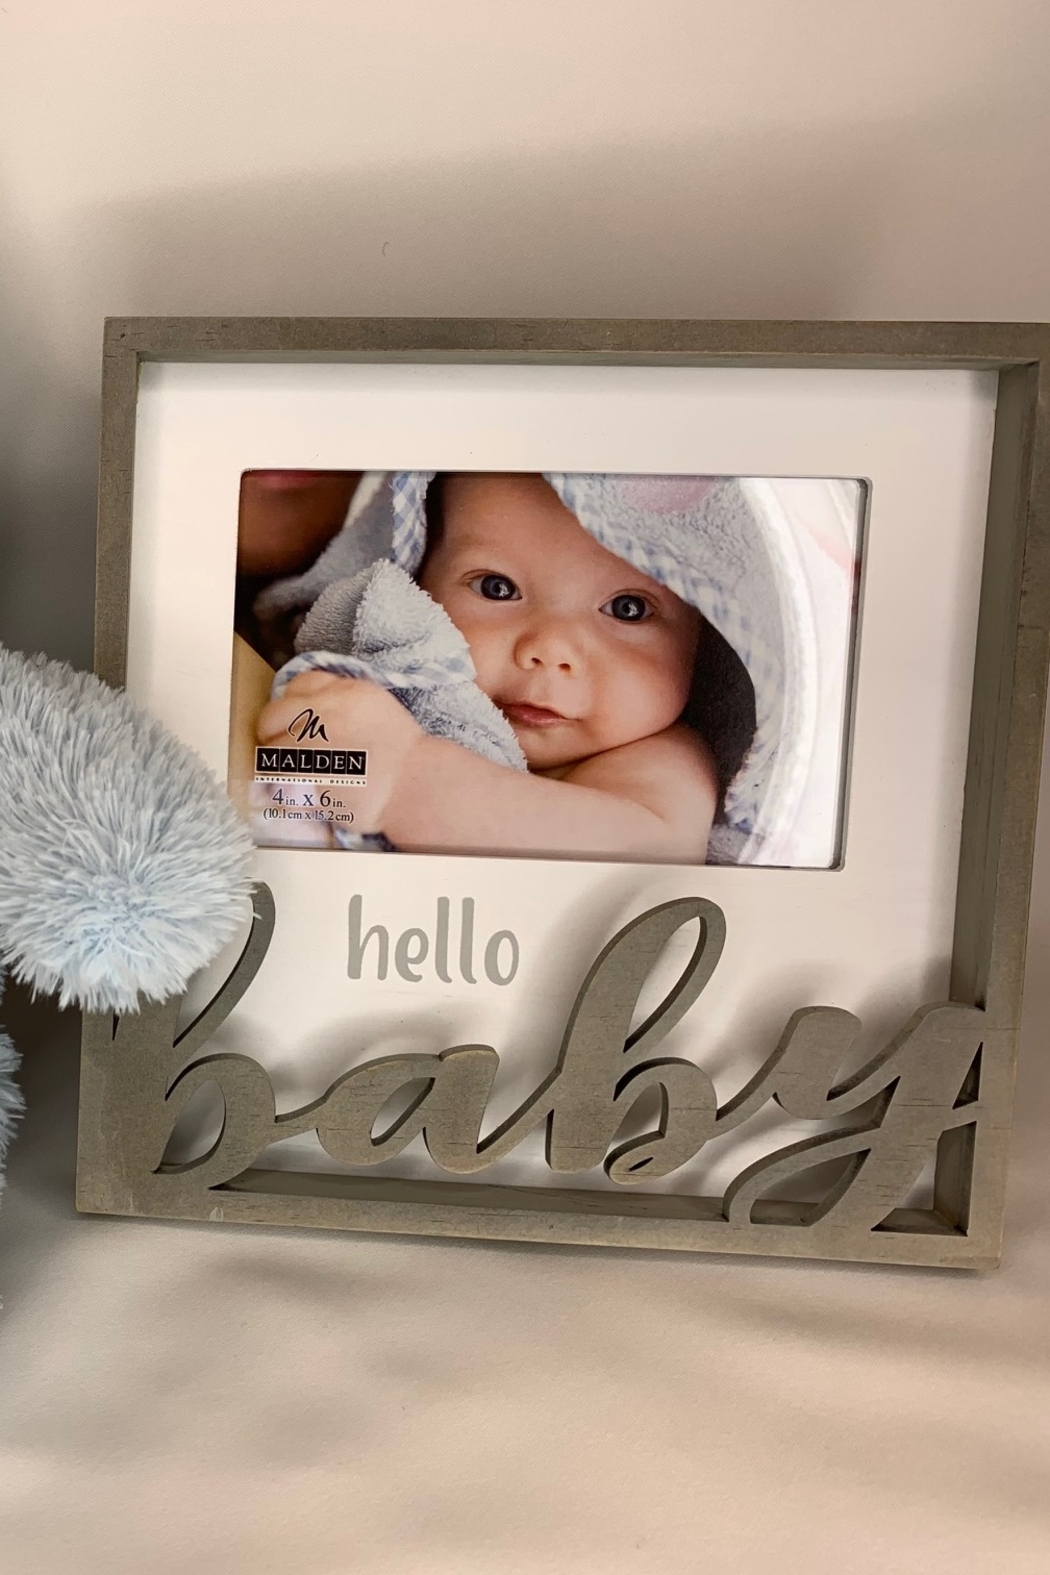 Malden 4 x 6 picture frame - Main Image